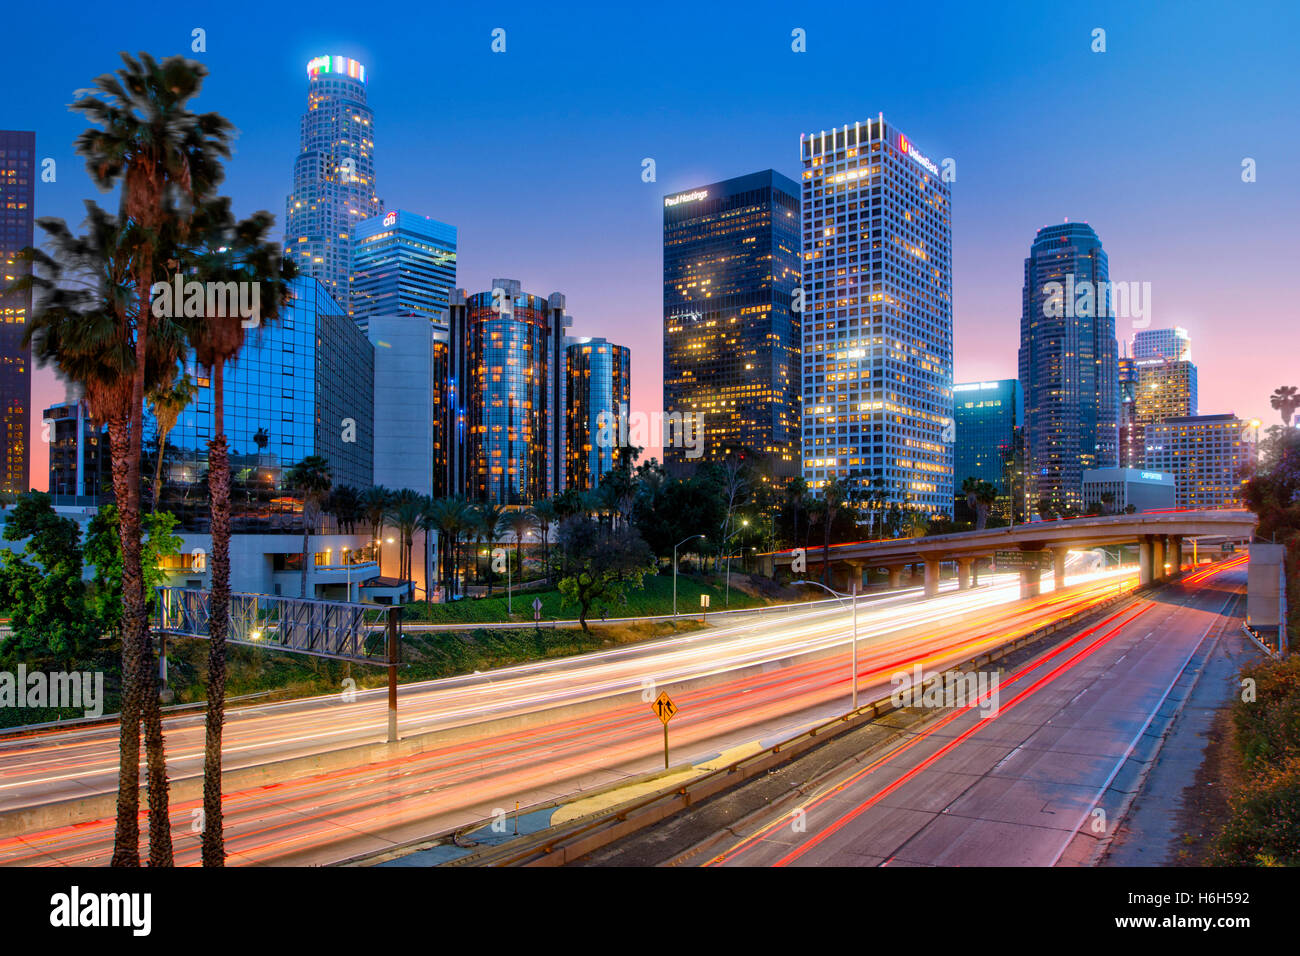 Harbor freeway in Los Angeles downtown - Stock Image